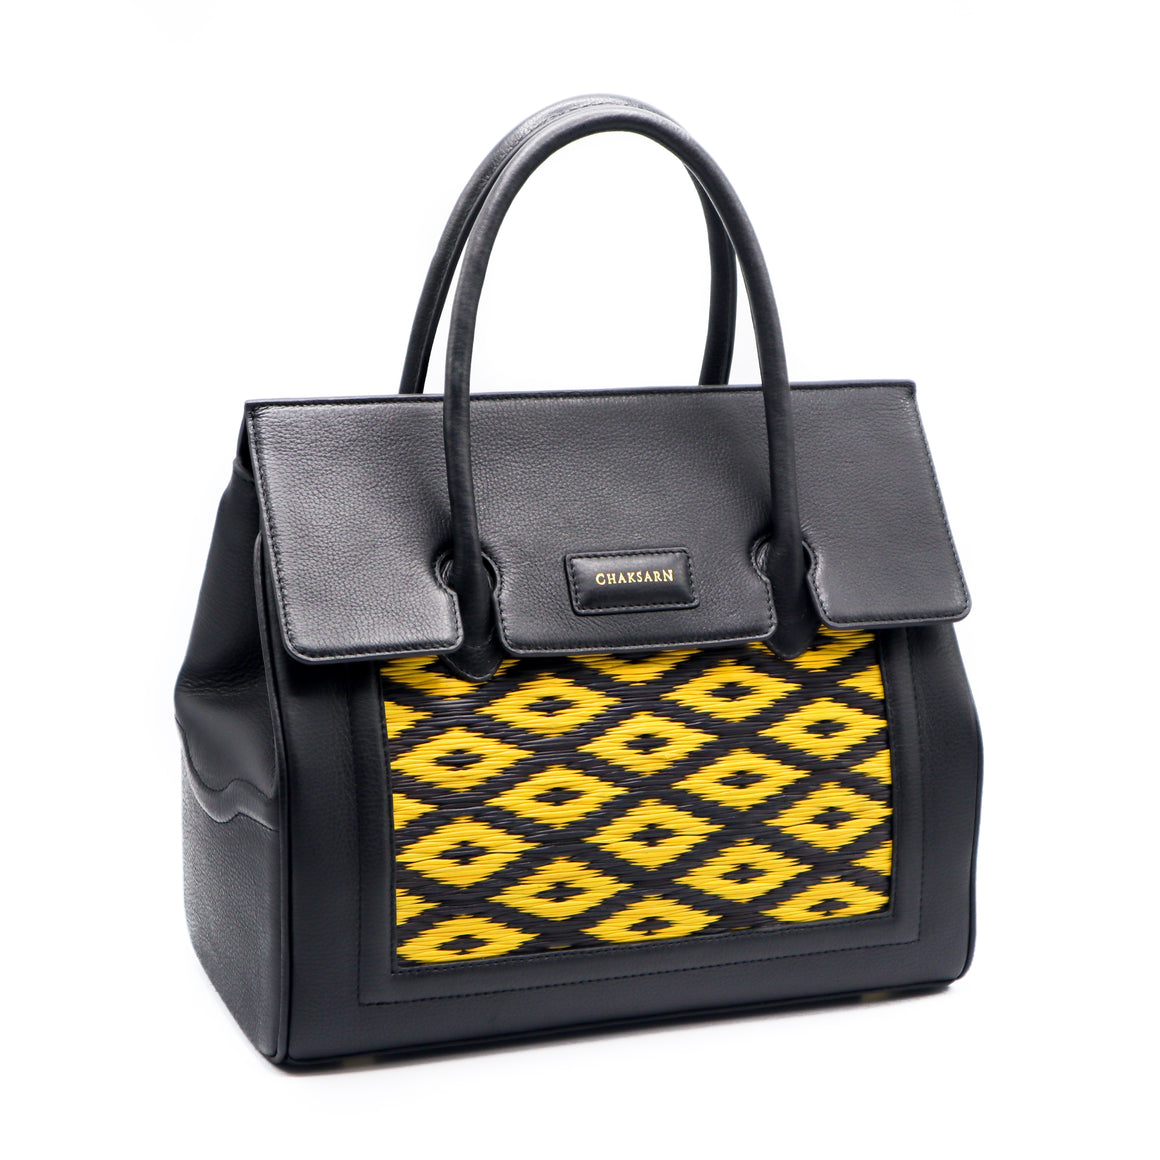 Lady - Black & Yellow (Diamond)